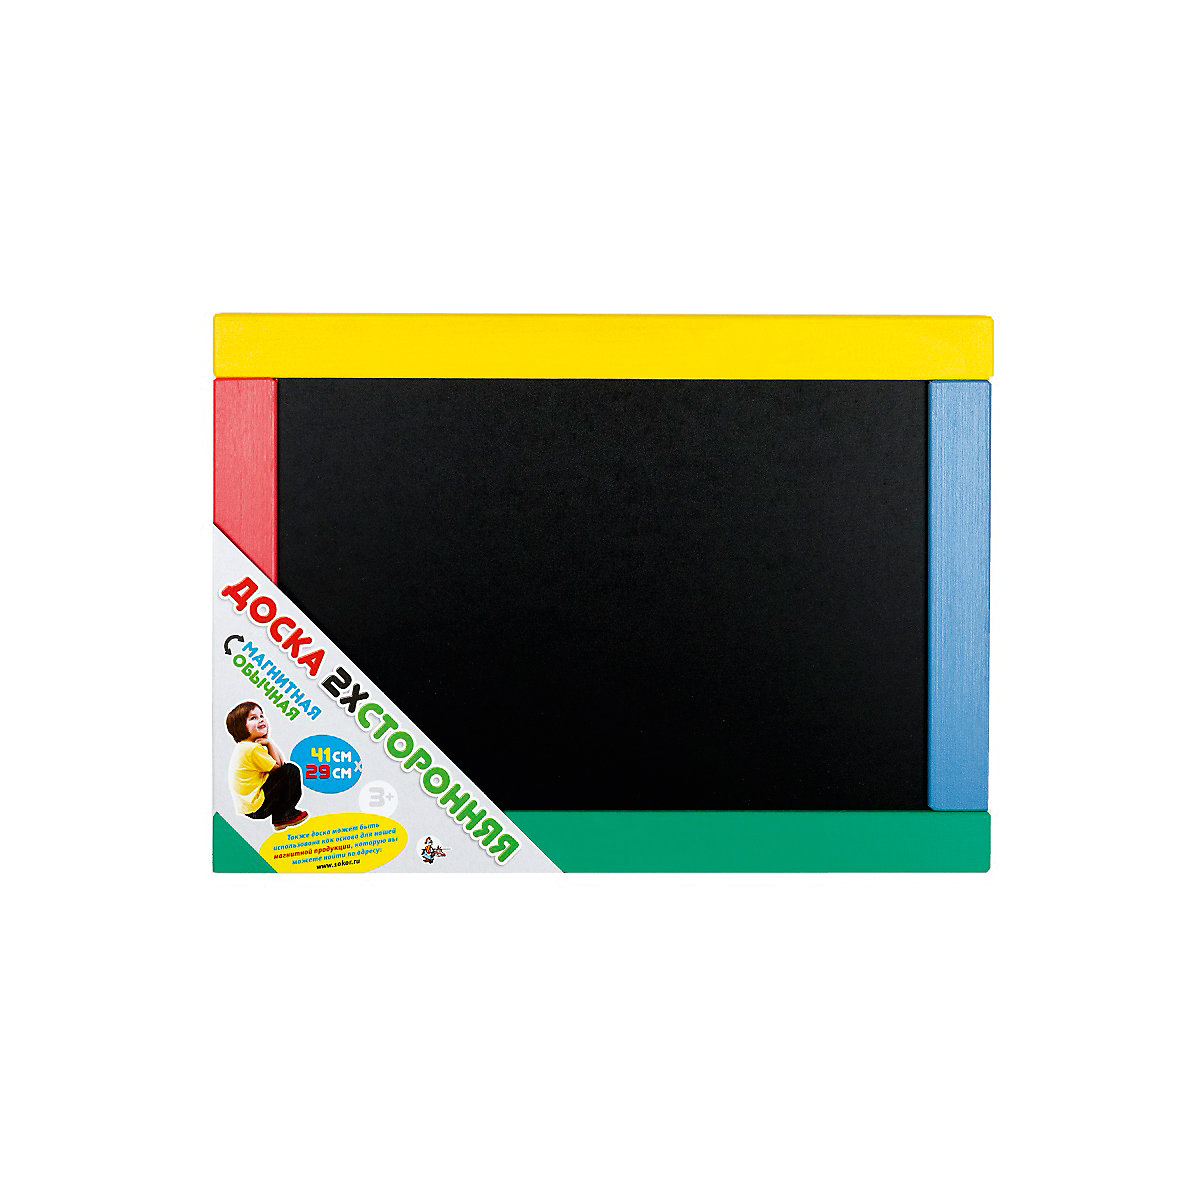 Blackboard Desyatoe Korolevstvo 5471710 Magnetic Marker Board  For Records Presentation Boards Drawing For Girls  Boys MTpromo